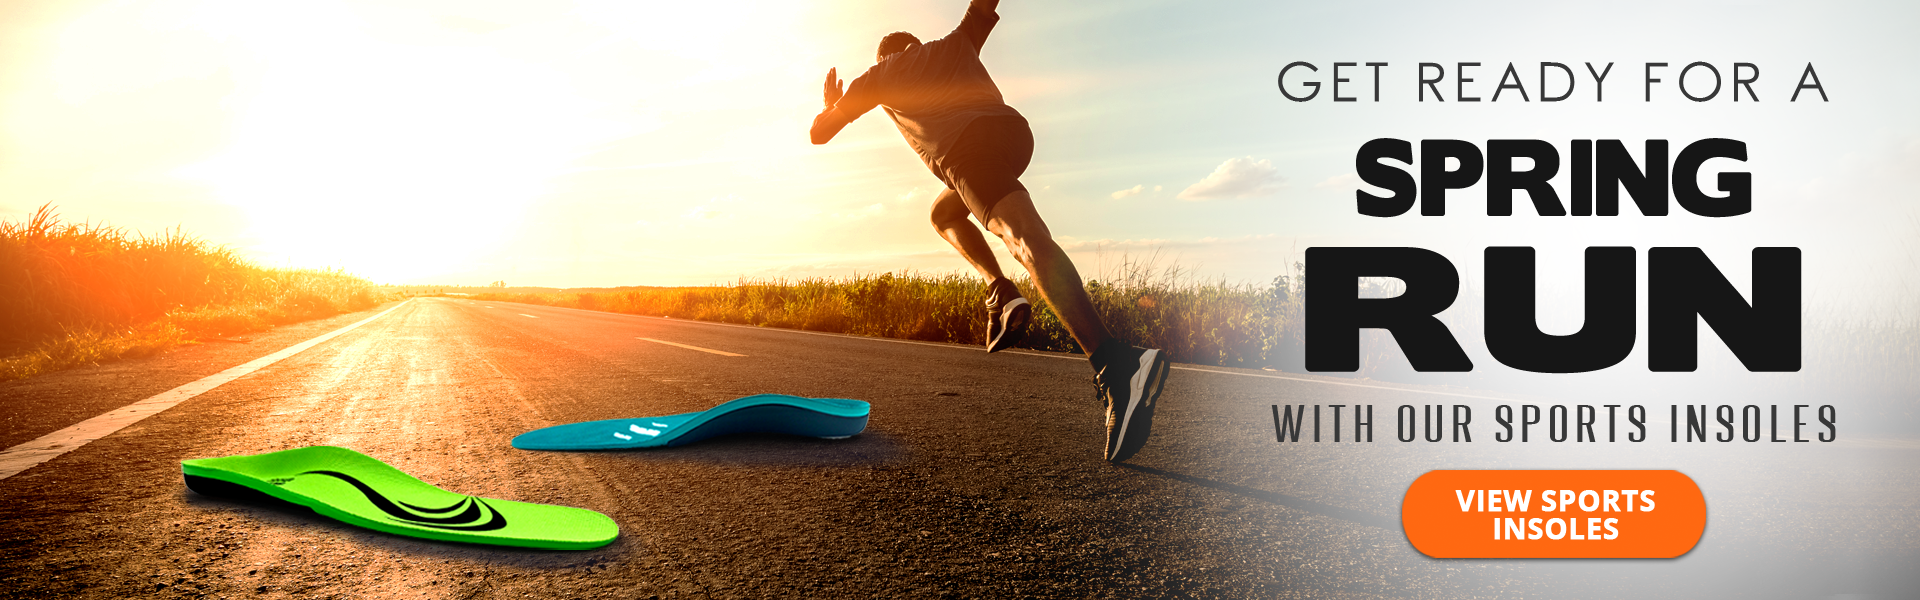 Get running ready with our sporting insoles!